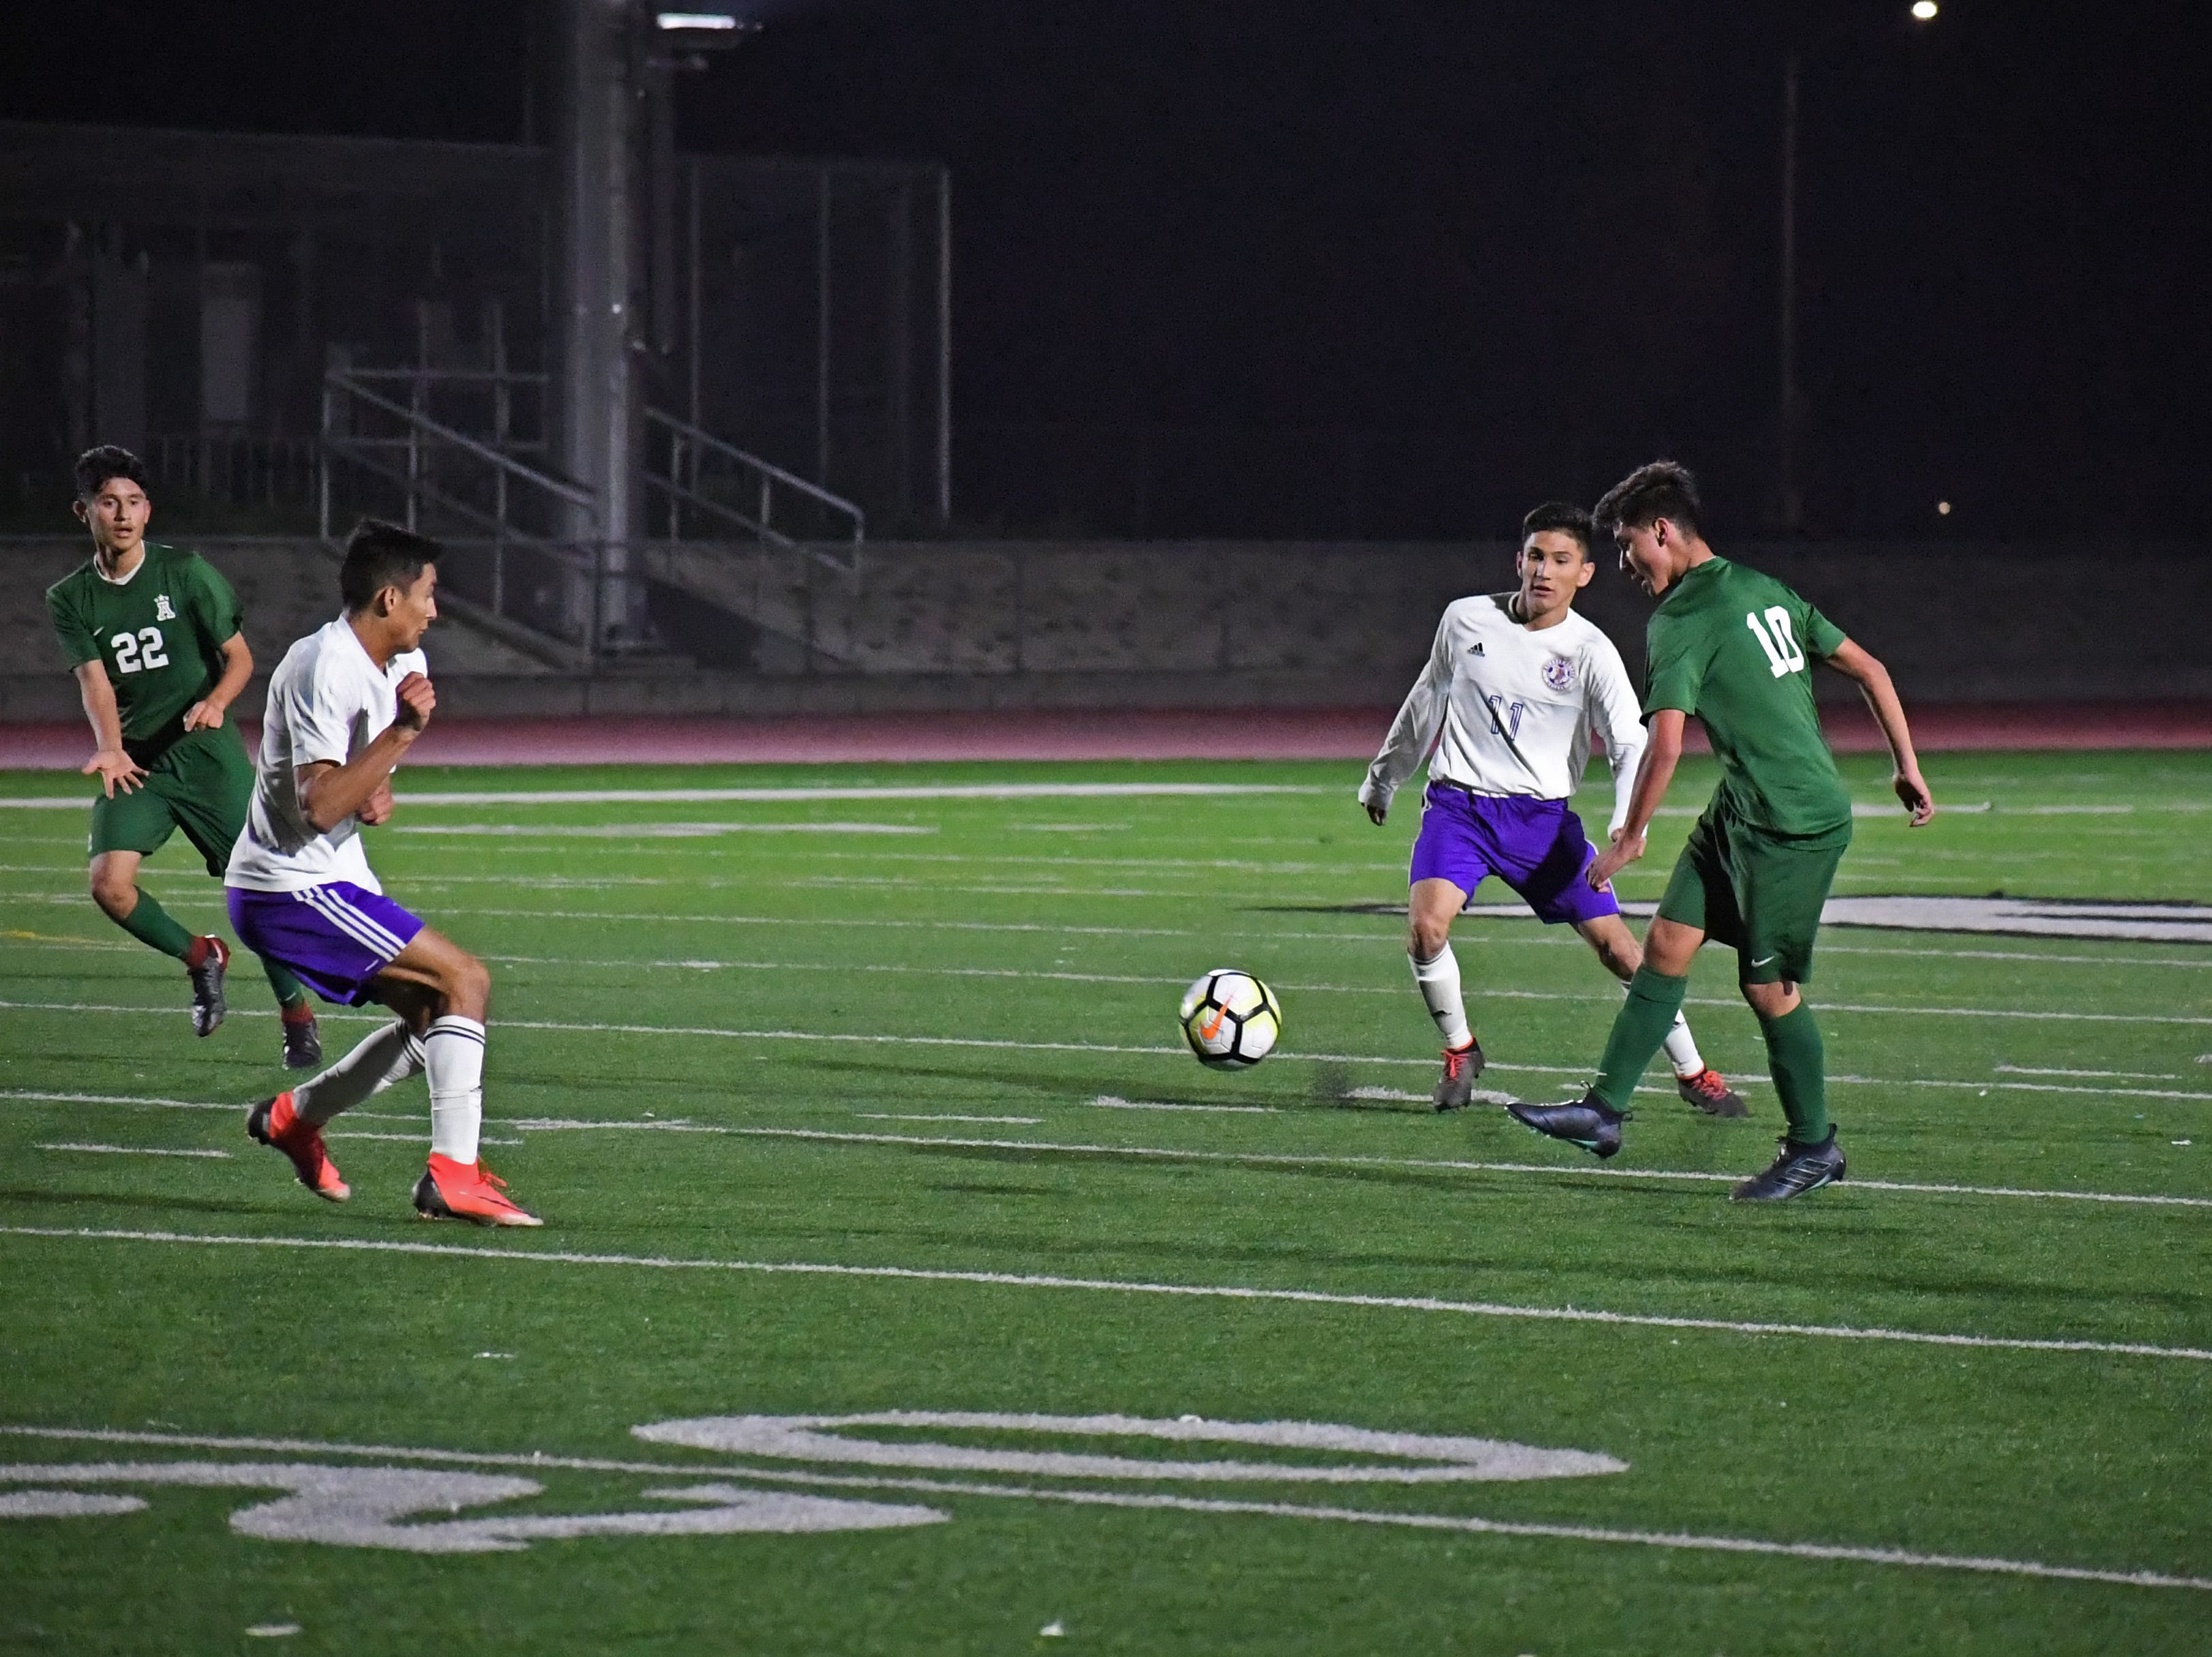 Alisal midfielder Jacob Cabrera (10) knocks a pass between two defenders.